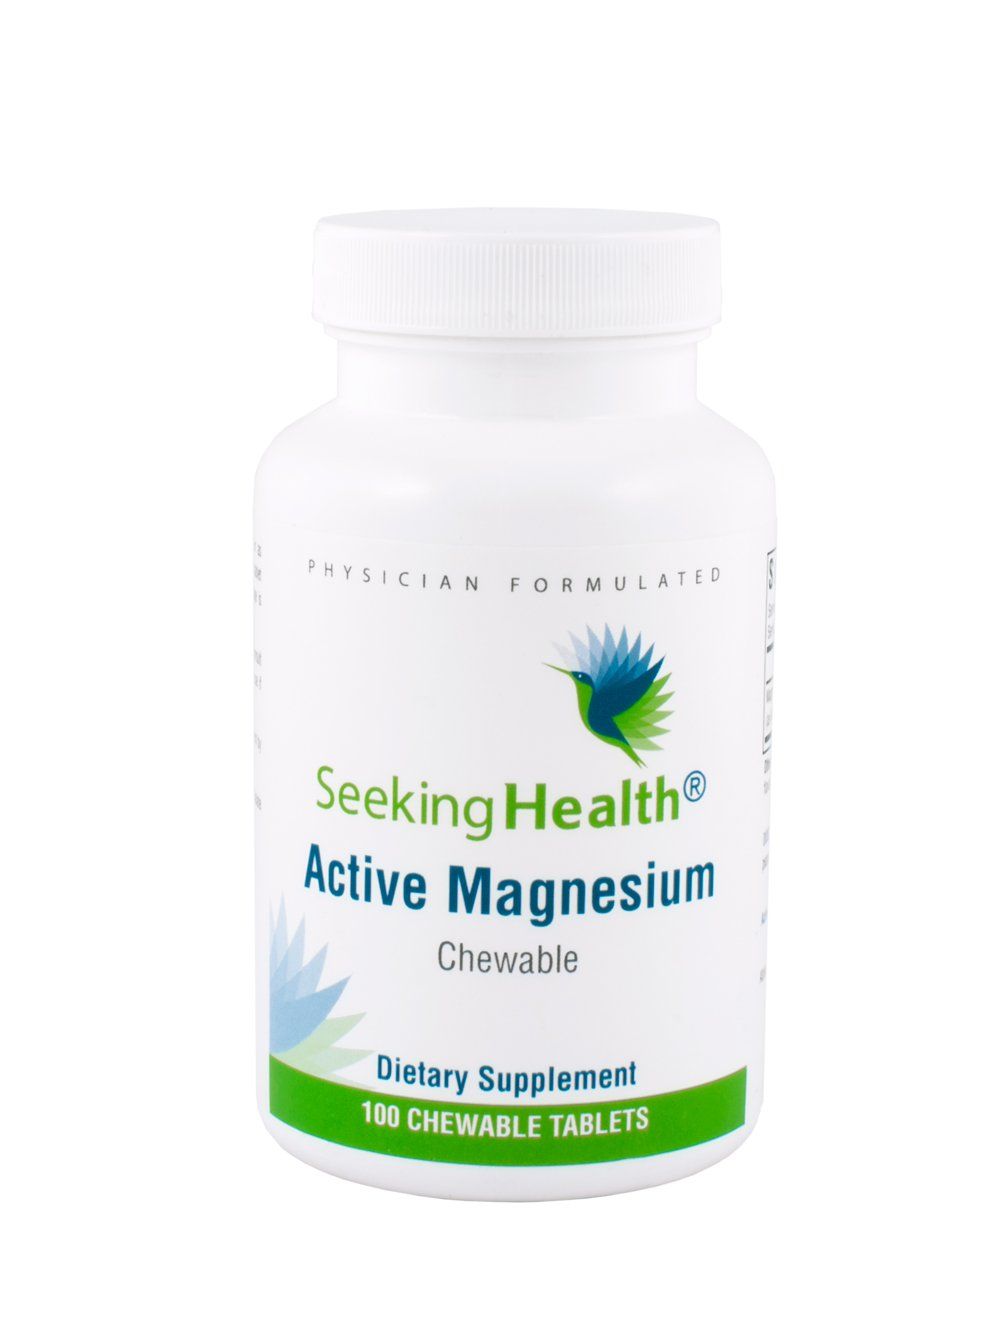 Active Magnesium Chewable | Provides 100 mg Dimagnesium Malate in an Easy-To-Deliver Chewable Tablet | 100 Chewable Tablets | Free of Magnesium Stearate | Non-GMO | Physician Formulated | Seeking Health